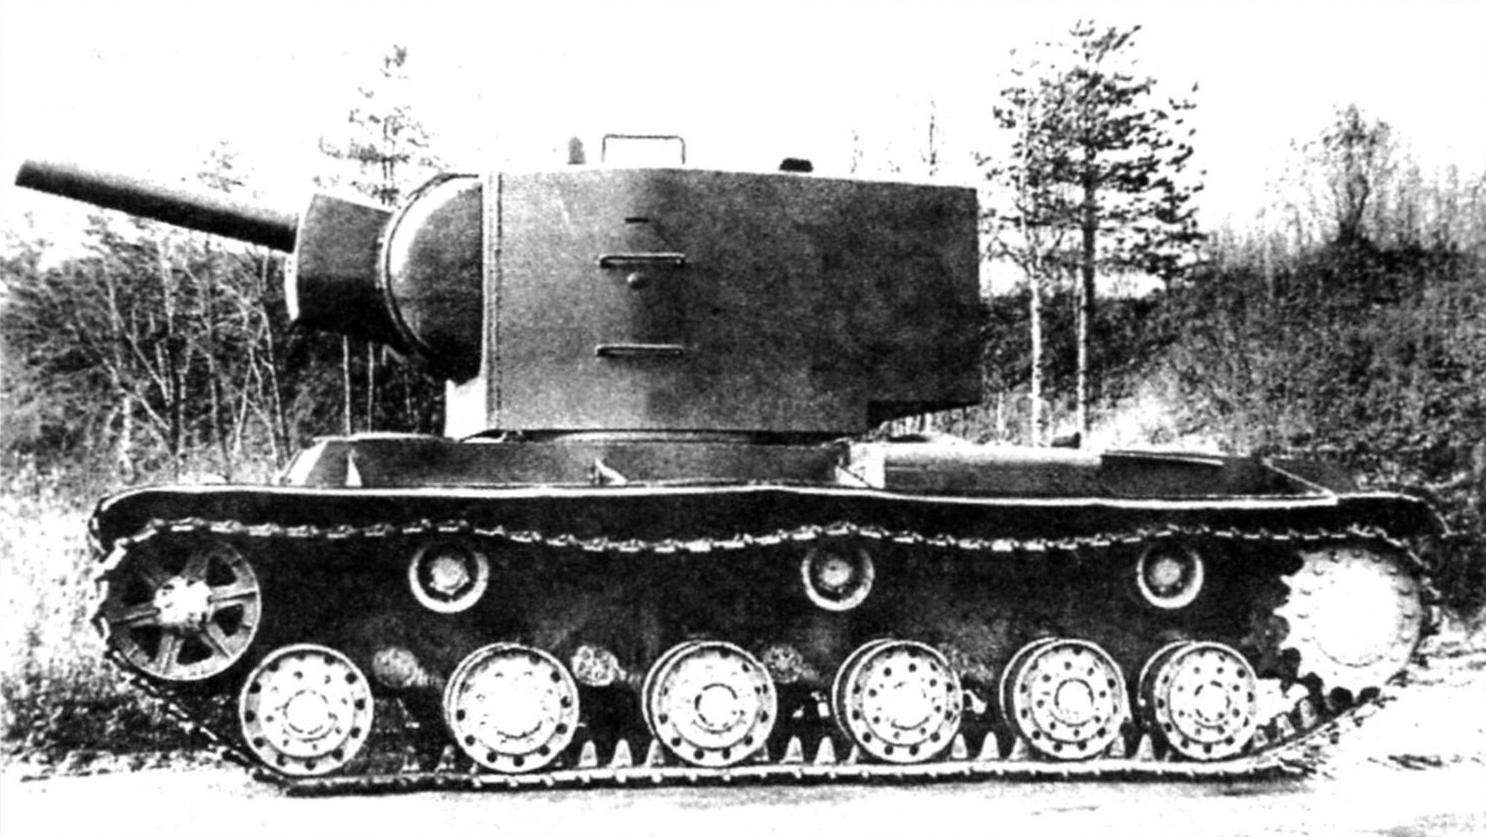 Heavy breakthrough tank KV-2. Weight - 52 tons, booking frontal part and the sides of the hull, turret - 75 mm Armament: 152-mm gun-howitzer M-10T, three 7.62-mm machine gun DT